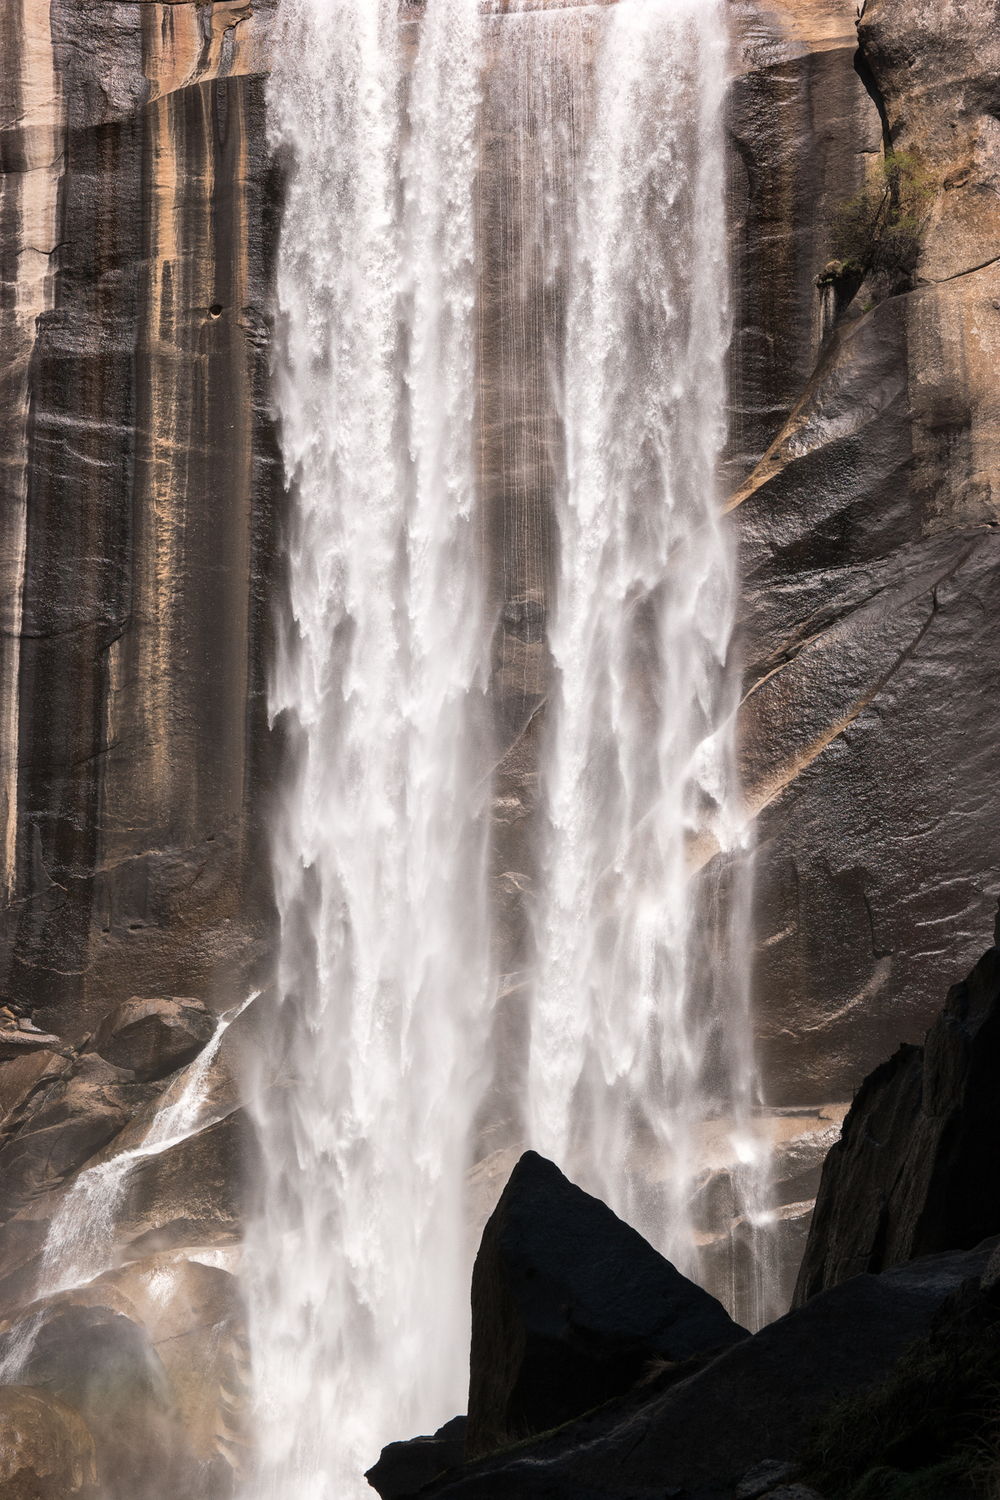 Wasim Muklashy Photography_April 2015_Yosemite_California_Samsung NX1_ SAM_8169_1800px.jpg